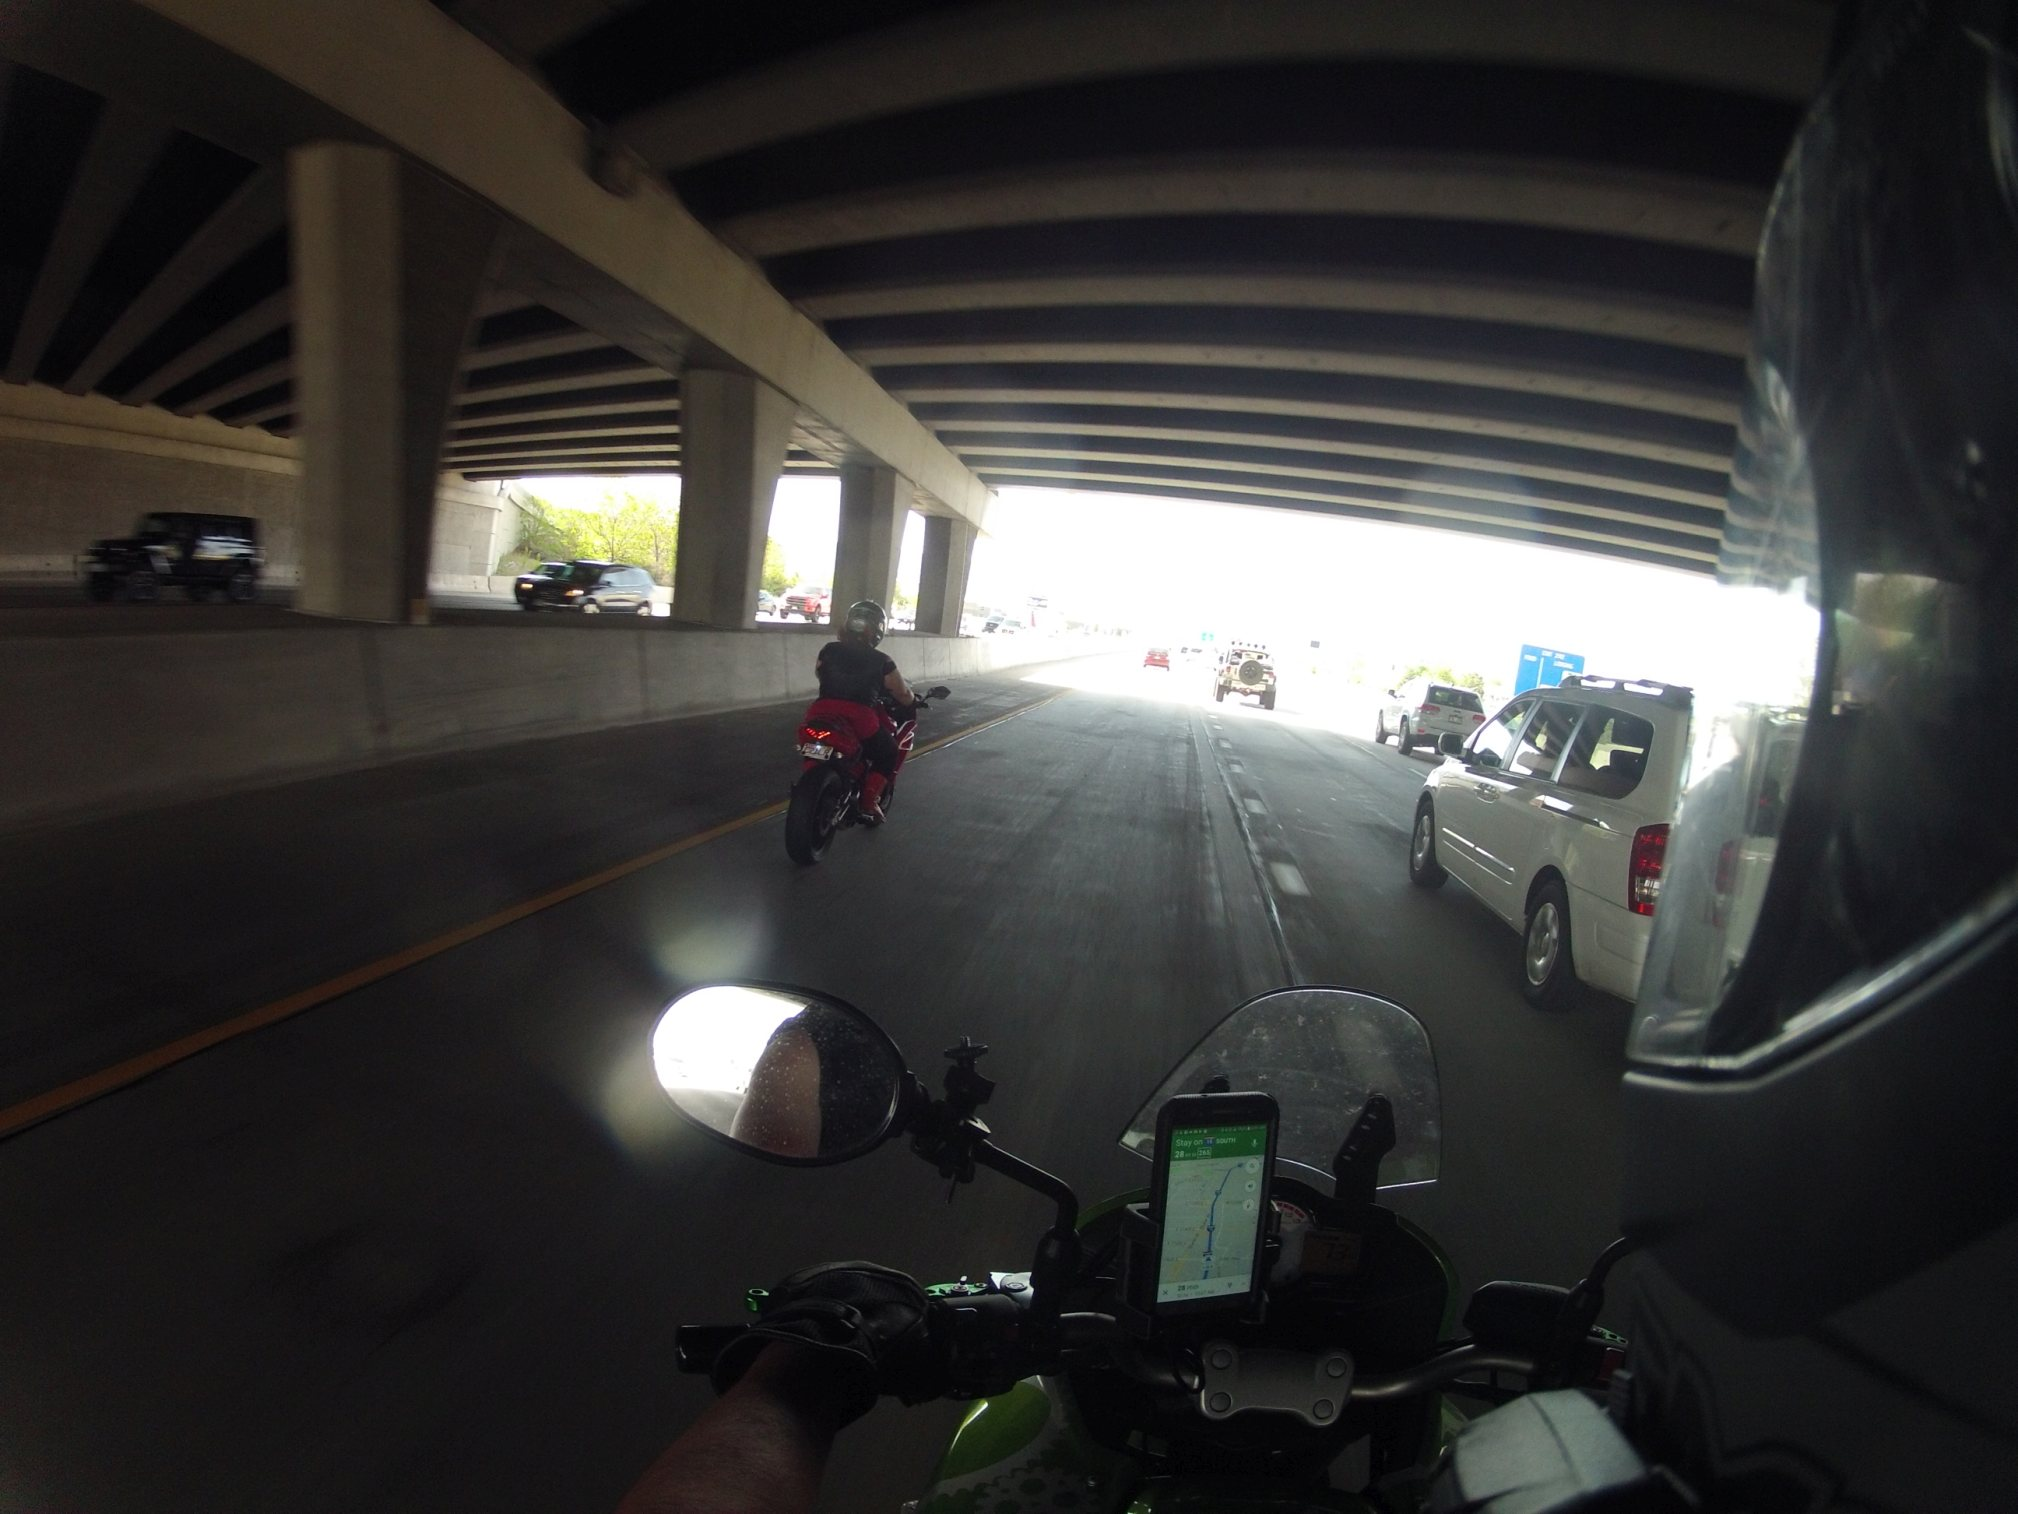 Pictured is a rider astride a motorcycle, helmet visible in the right foreground. Another rider appears two car lengths ahead on the left. They are under a shaded freeway overpass. In the cockpit of the bike a cell phone is visible, displaying GPS navigation with a blue highlighted route.